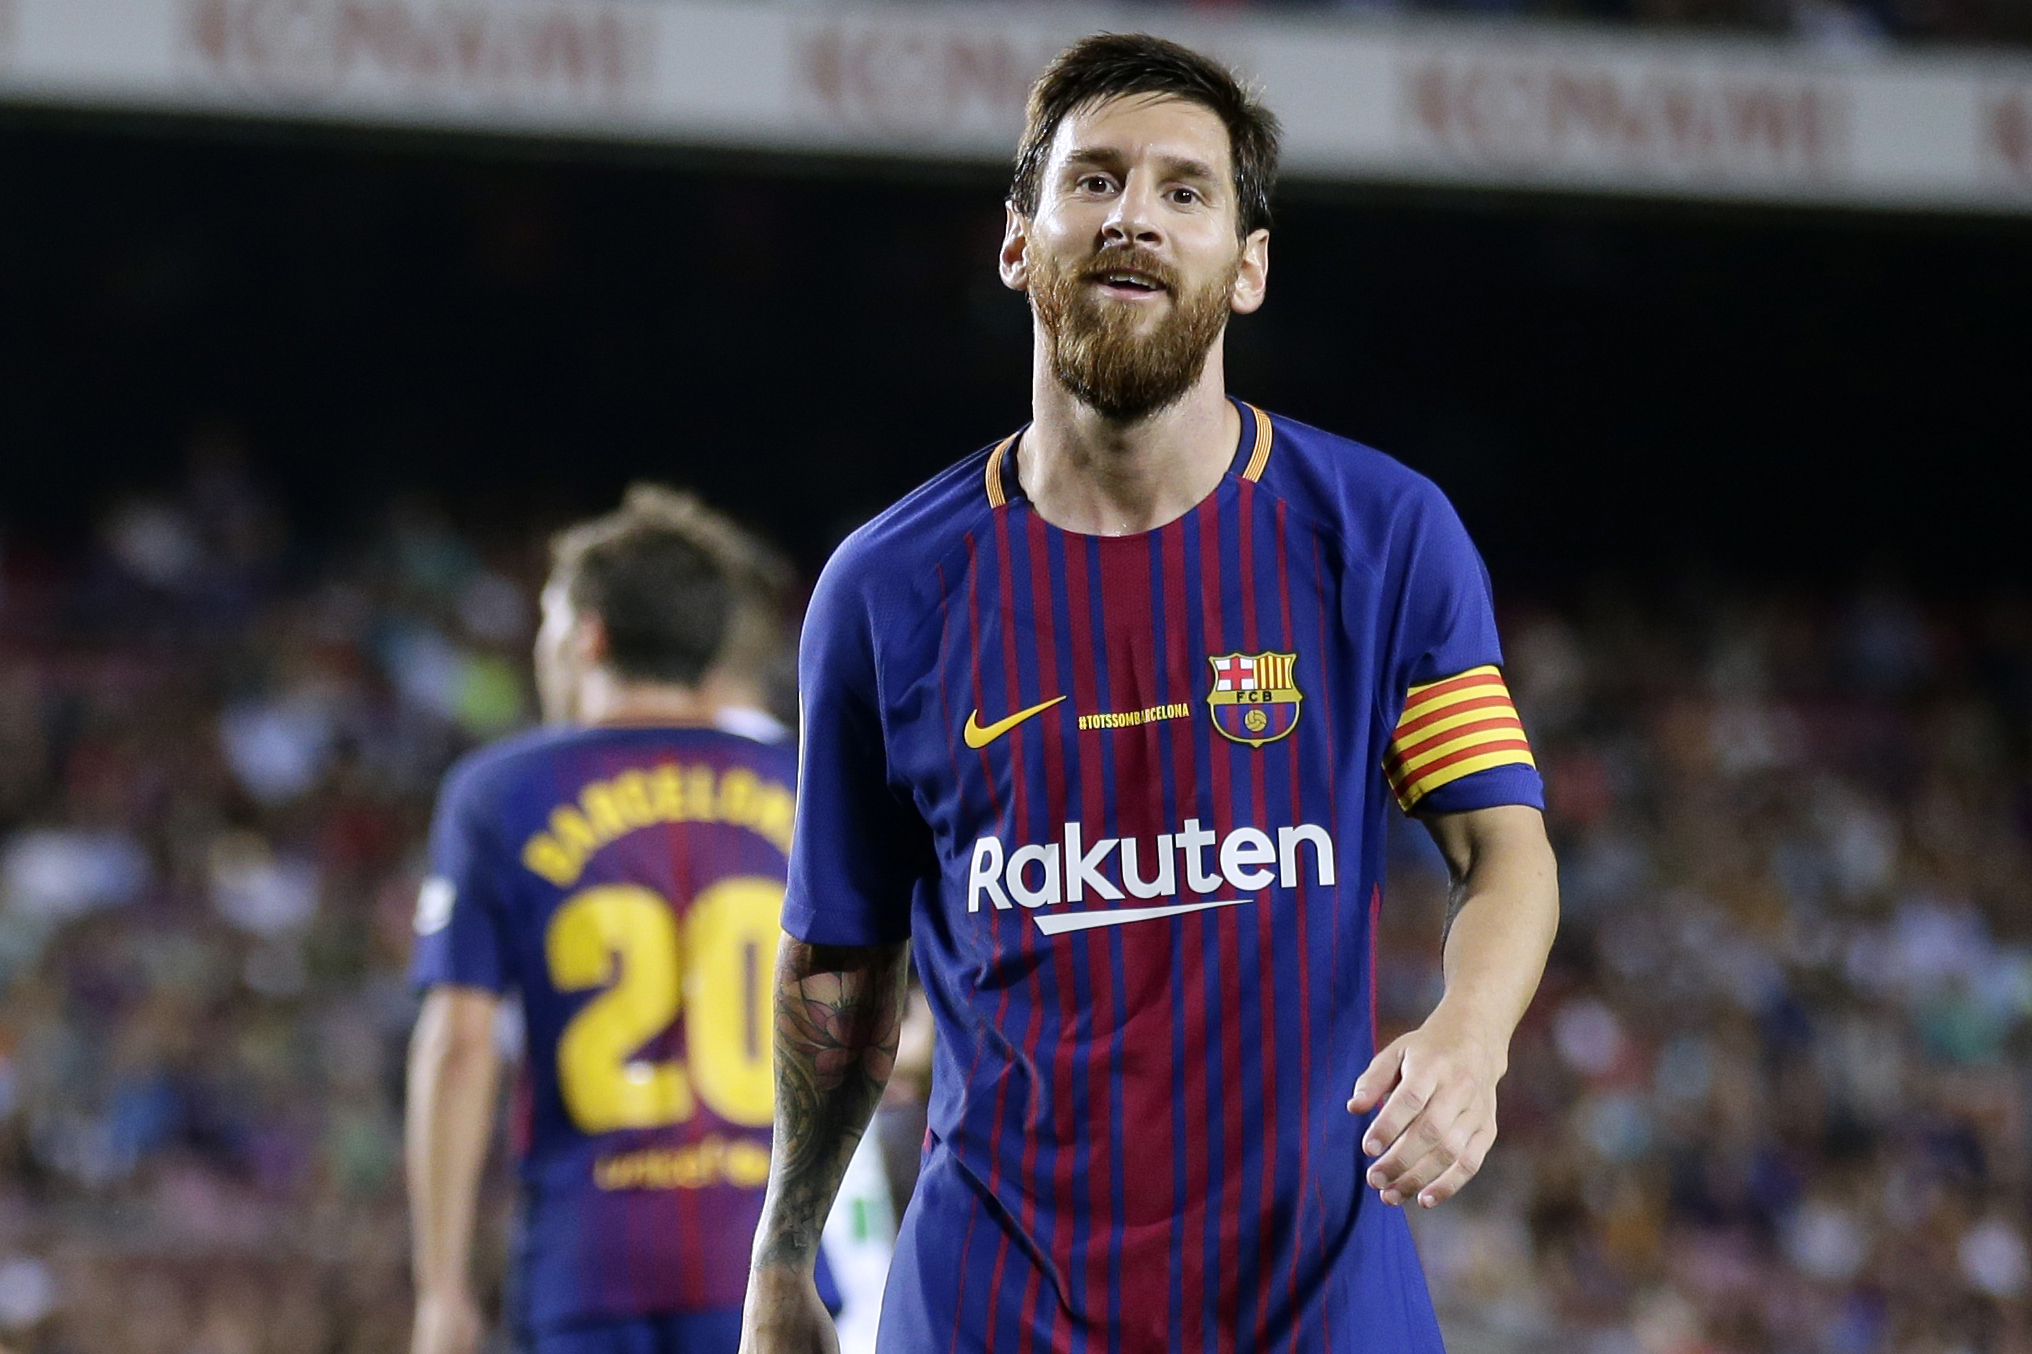 FC Barcelona's Lionel Messi, looks on during the Spanish La Liga soccer match between FC Barcelona and Betis at the Camp Nou stadium in Barcelona, Spain, Sunday, Aug. 20, 2017.